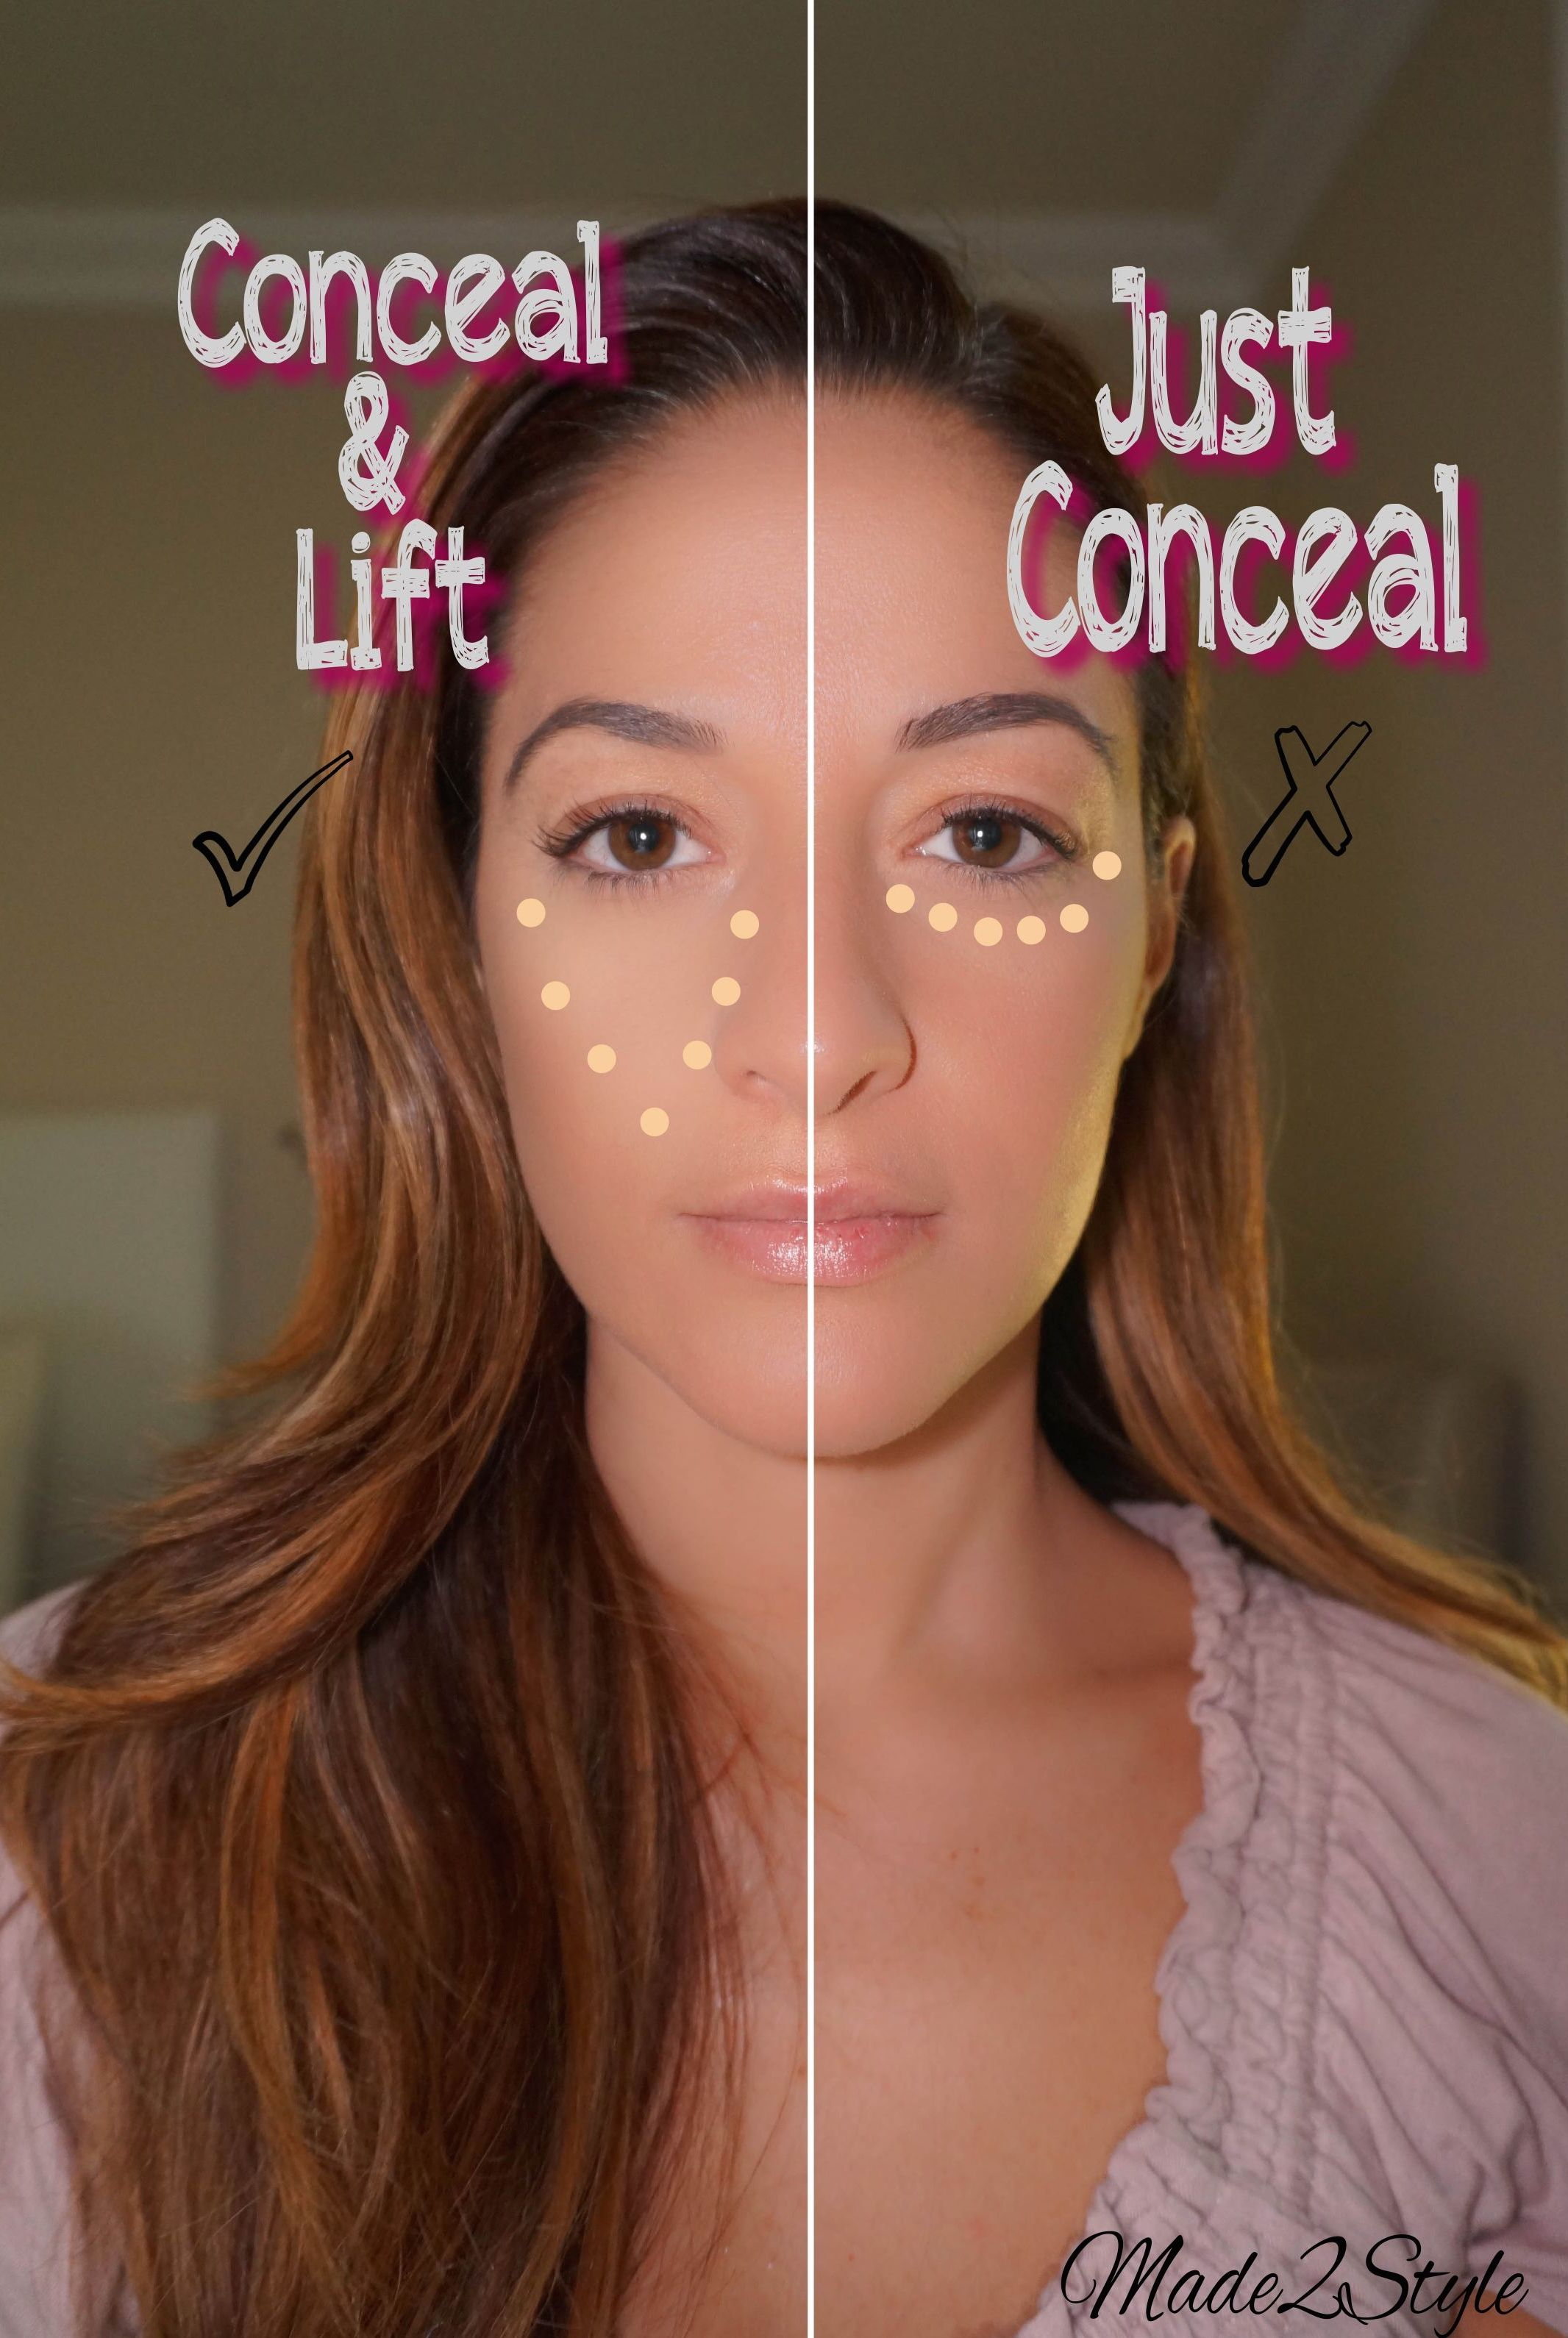 Beauty Tip Tuesday The Correct Way to Apply Concealer